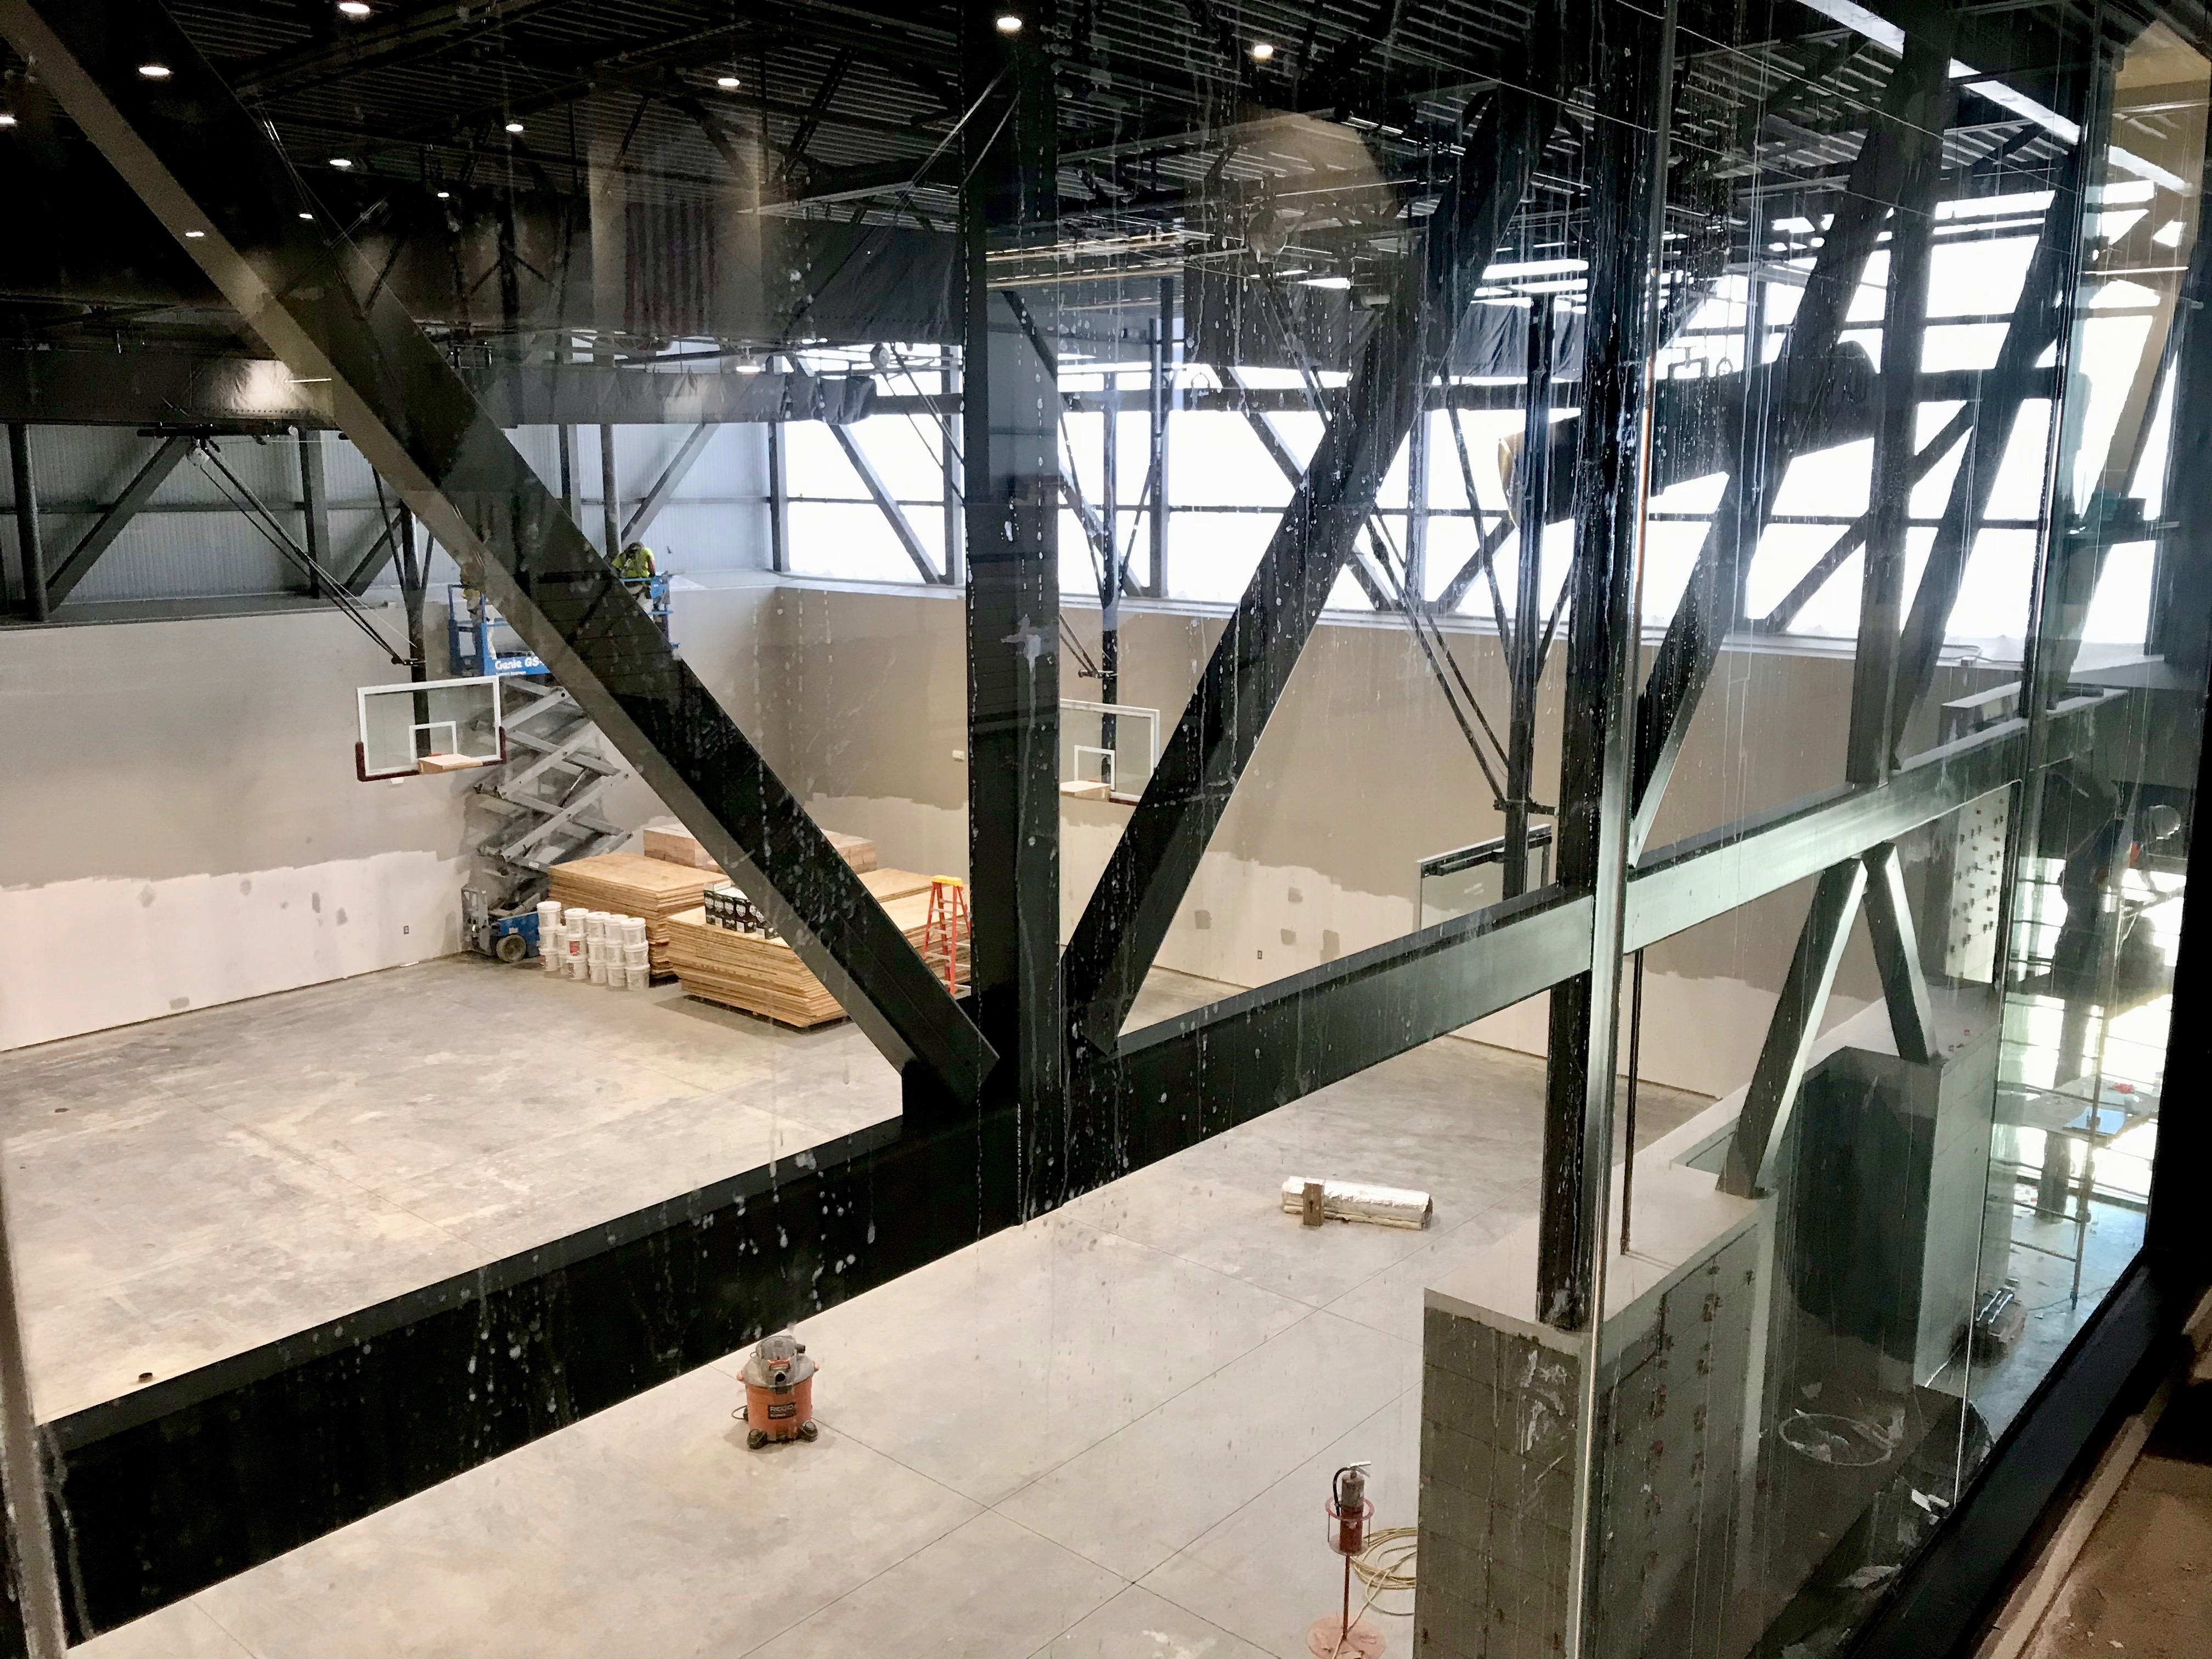 Concourse view, practice gym